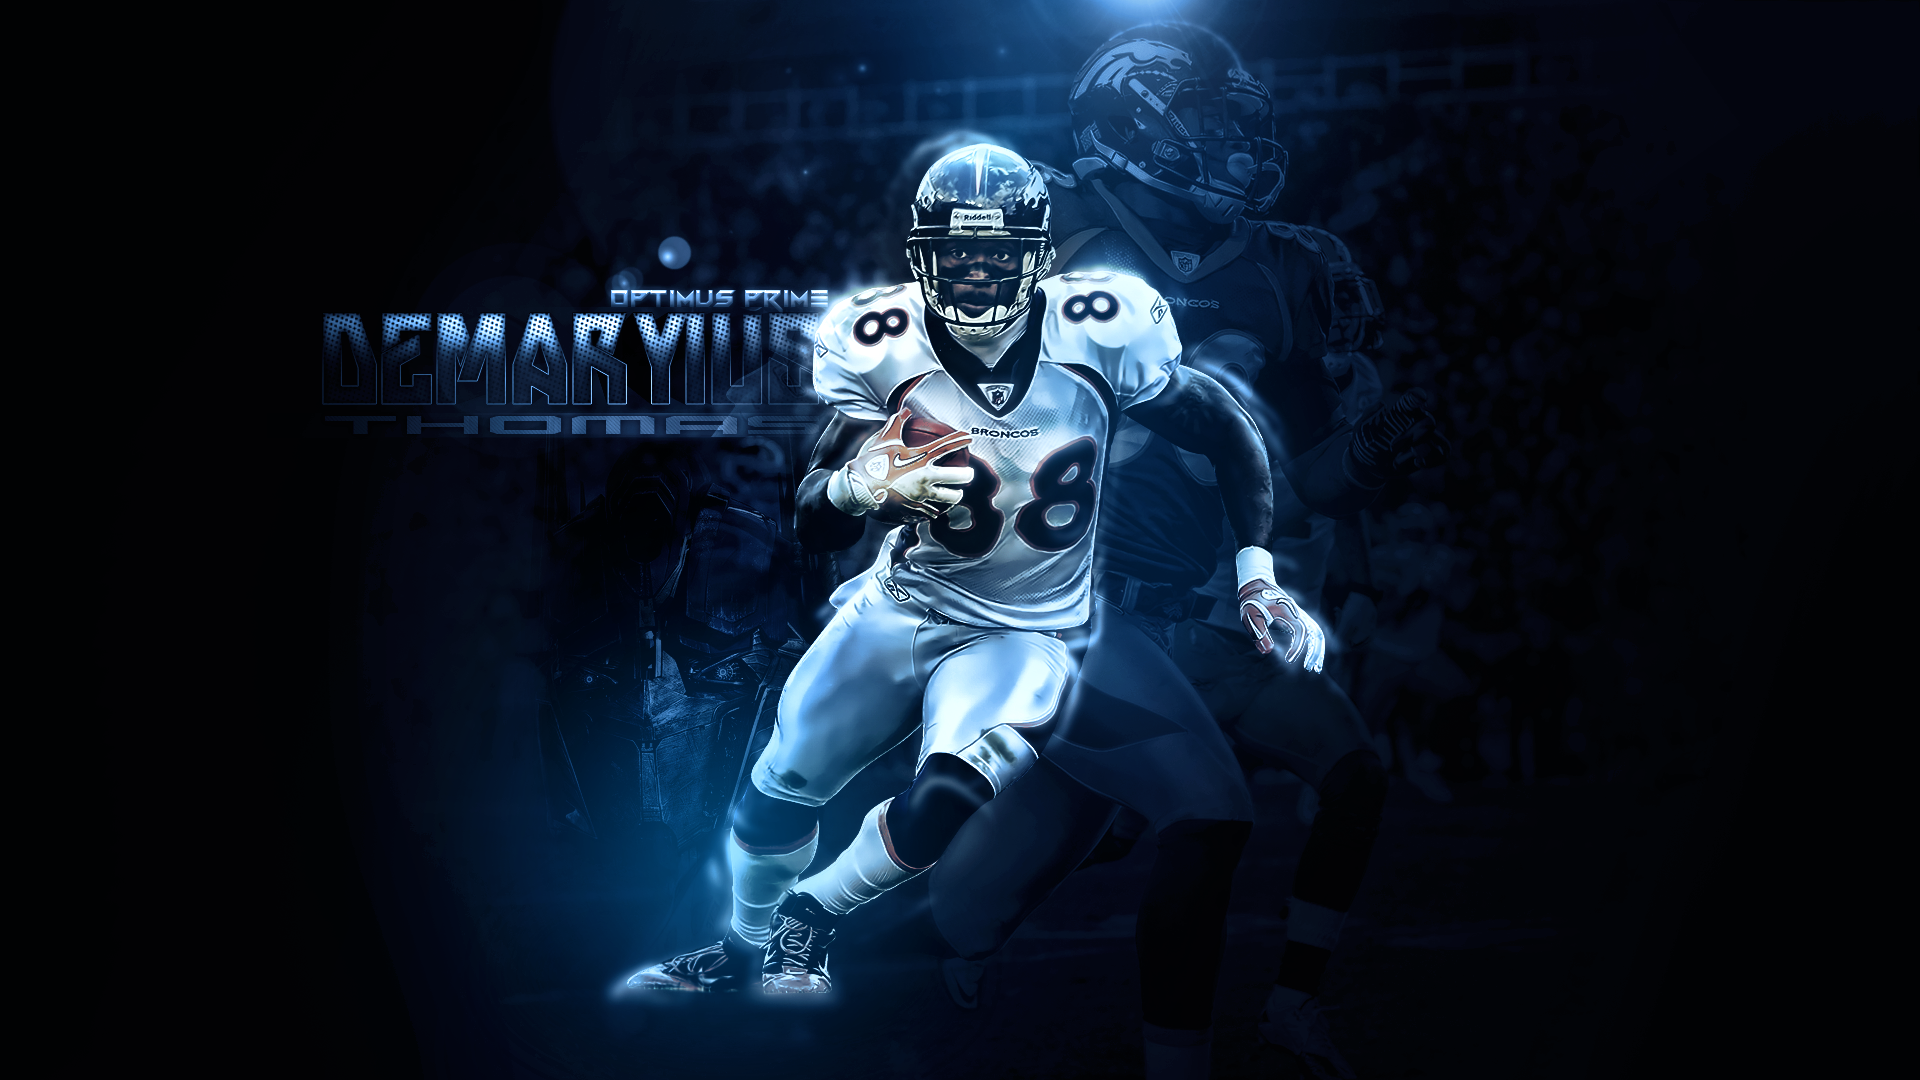 Denver Broncos Demaryius Thomas Wallpaper Images Pictures   Becuo 1920x1080